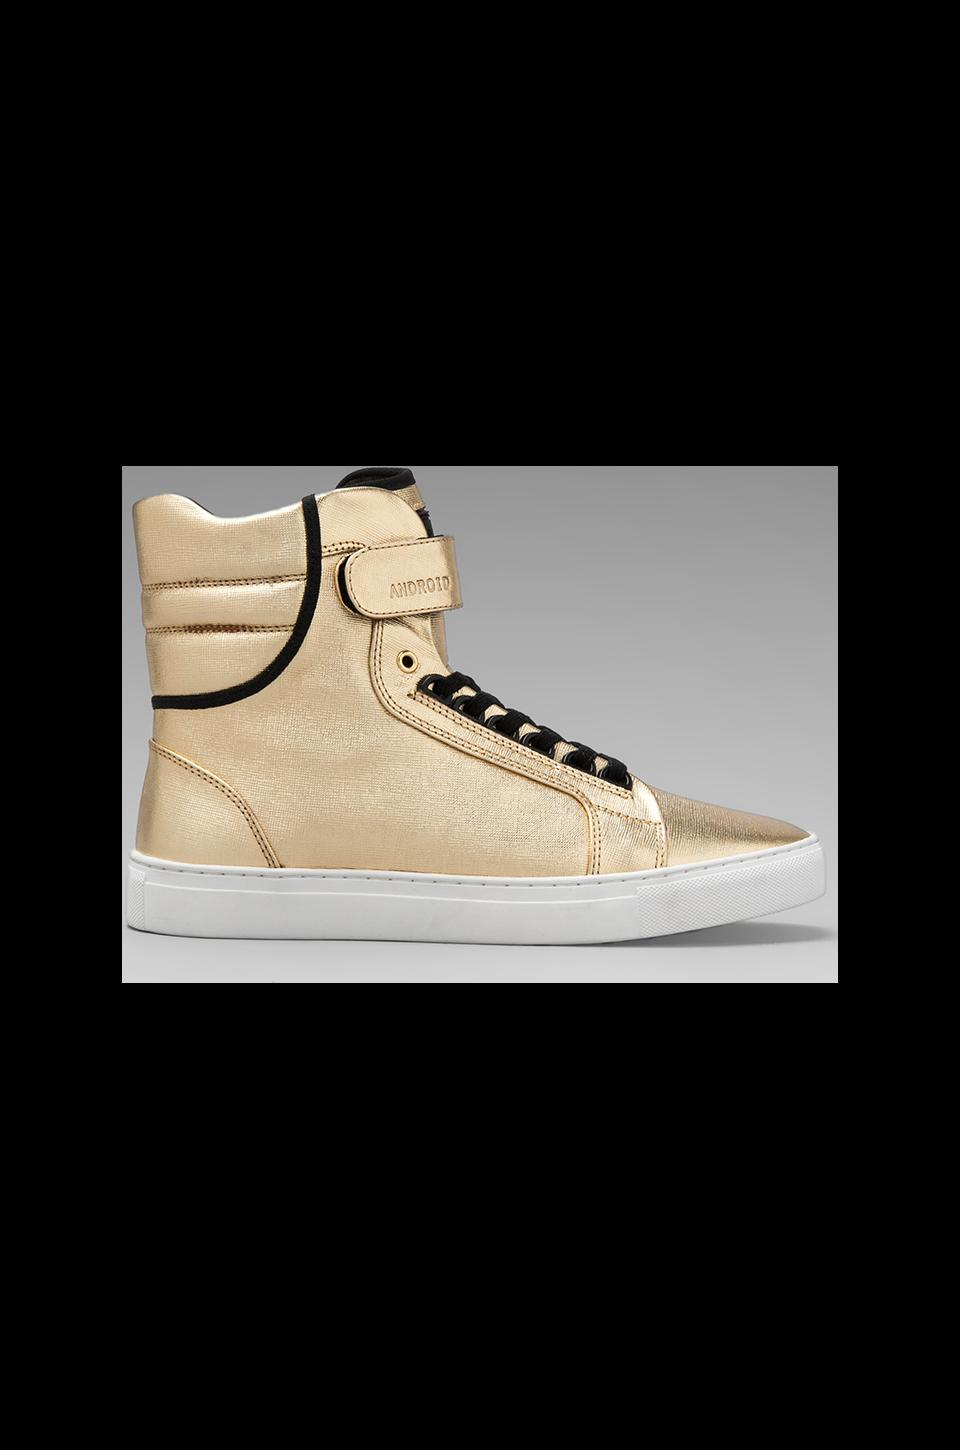 Android Homme Propulsion 1.5 in Gold